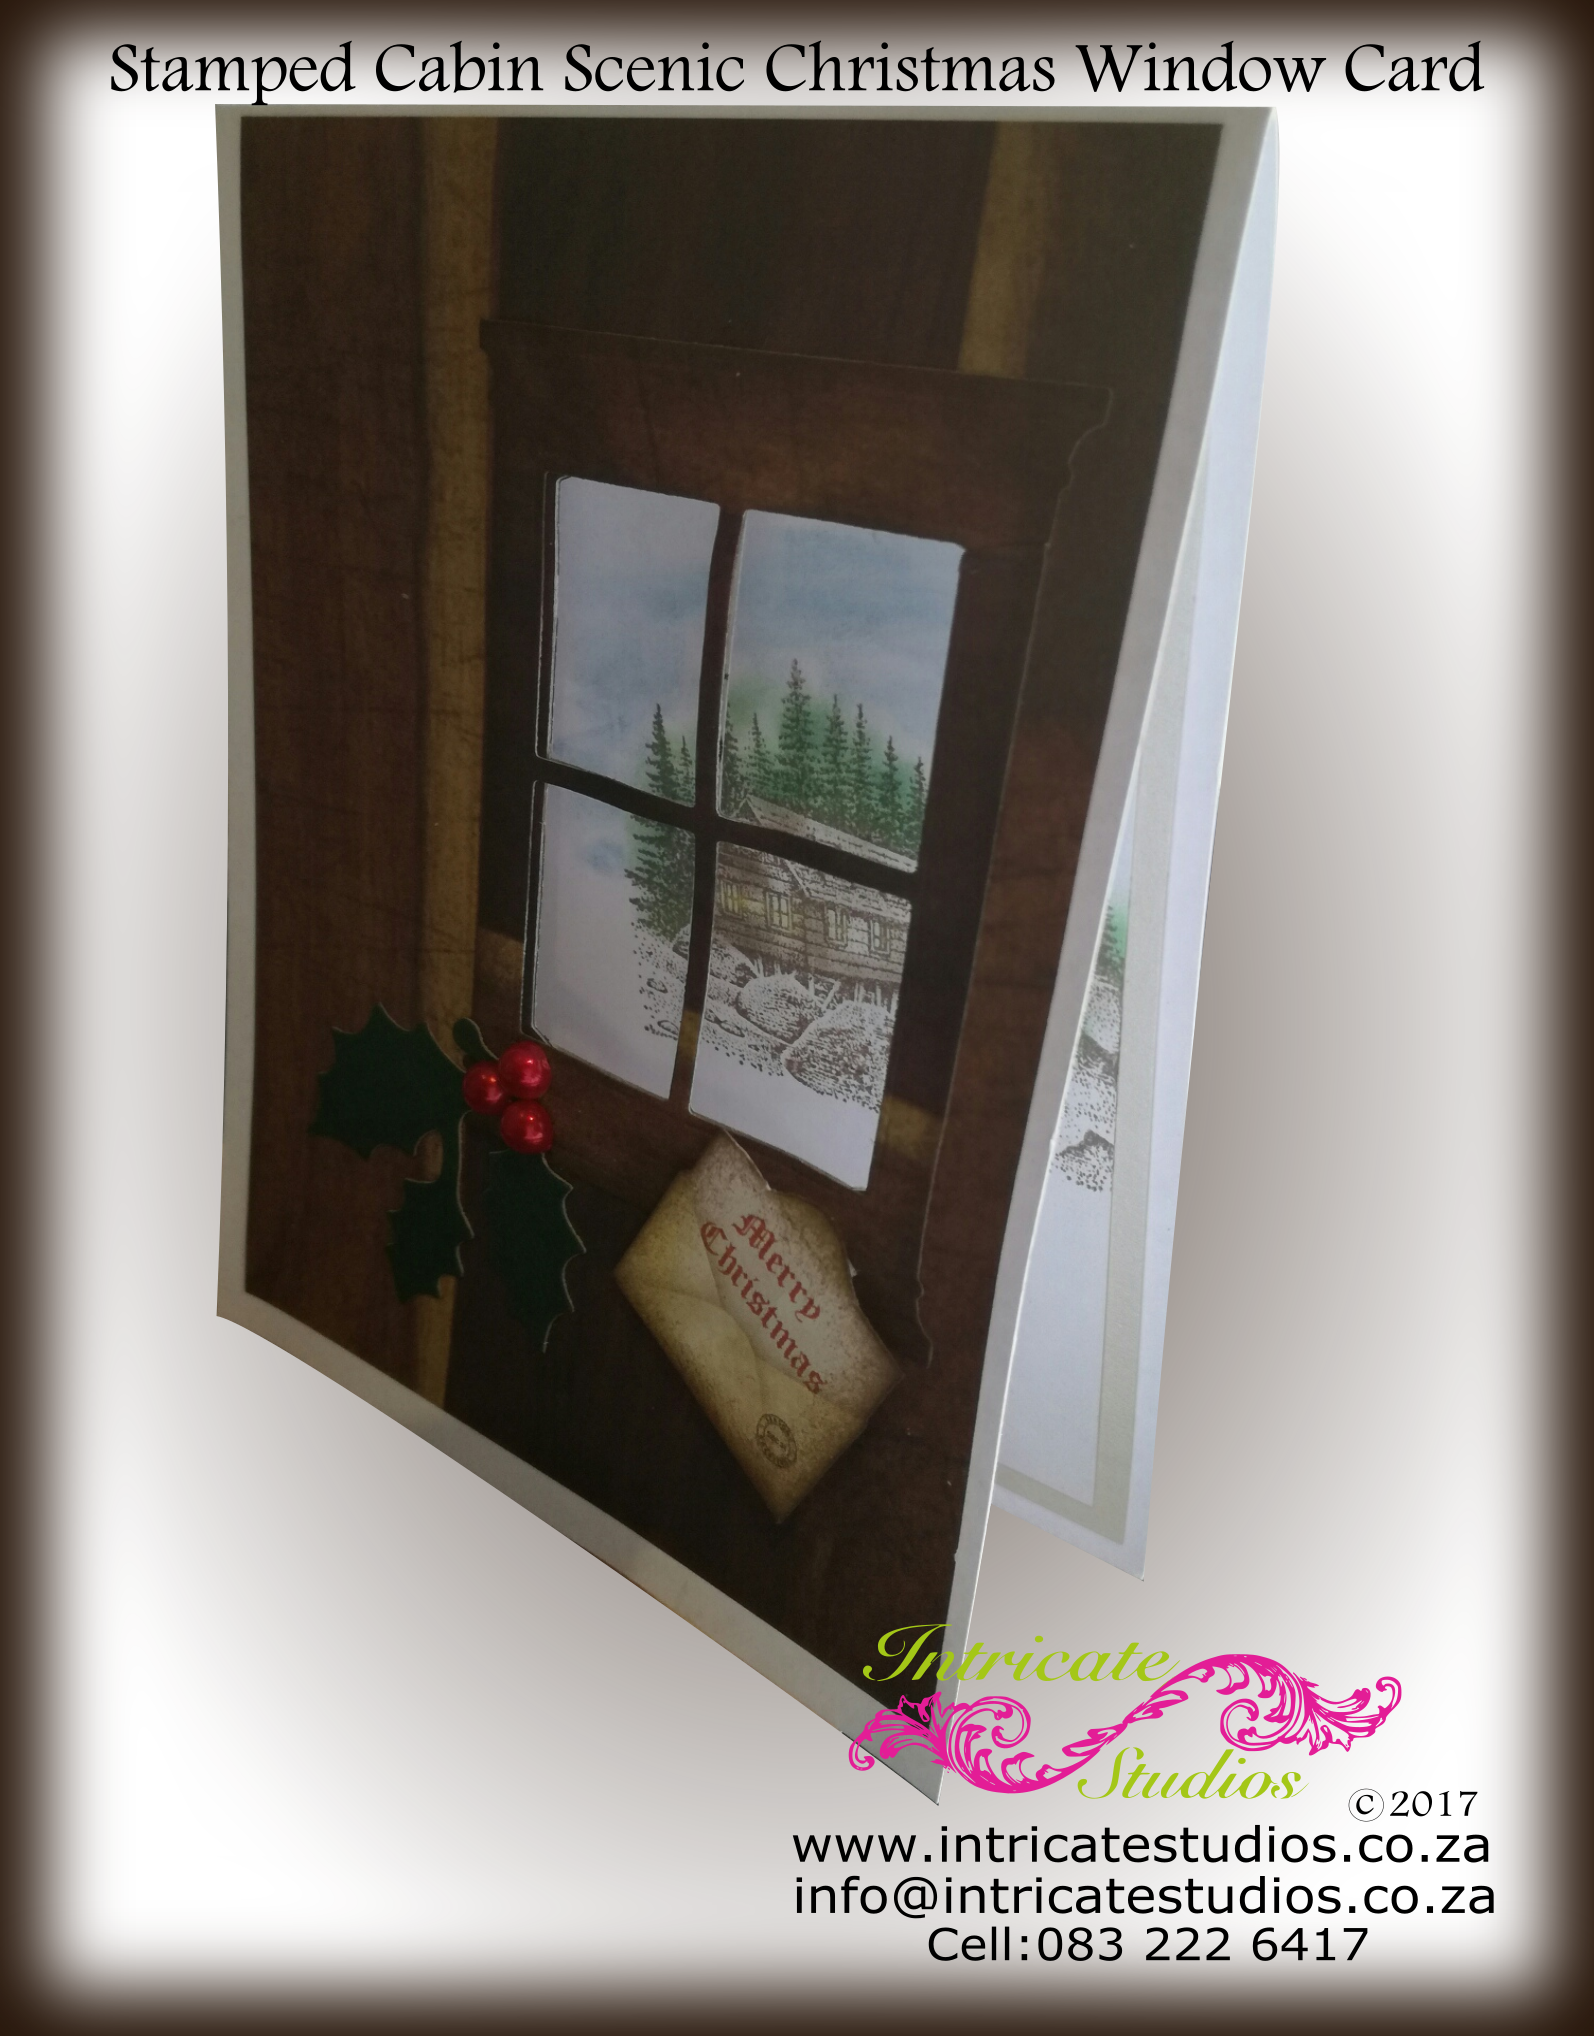 Stamped Cabin Scenic Christmas Window Card